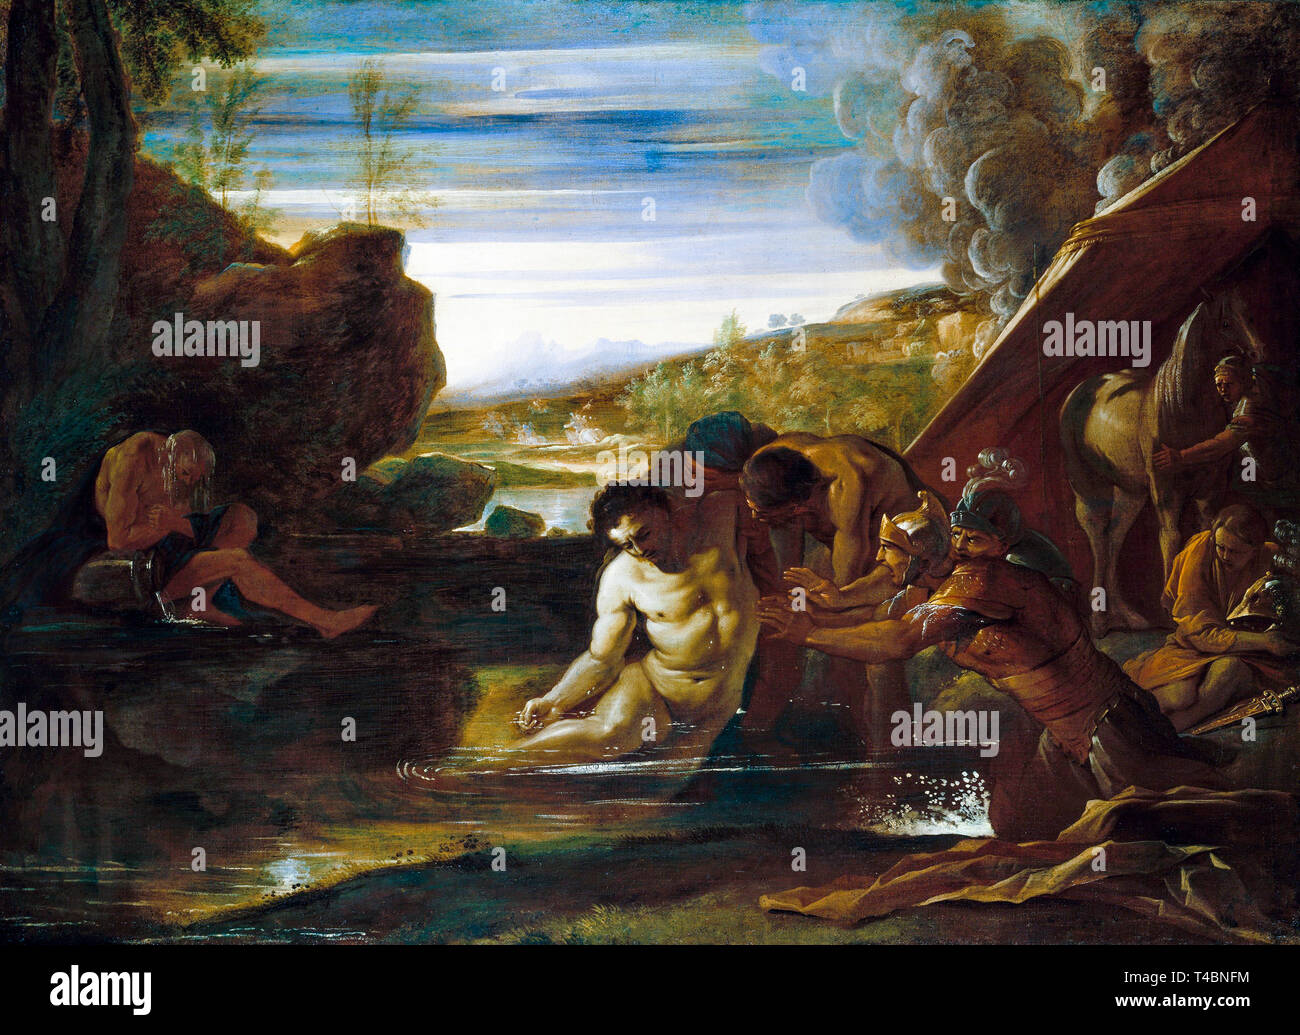 Pietro Testa, Alexander the Great Rescued from the River Cydnus, painting, c. 1650 - Stock Image